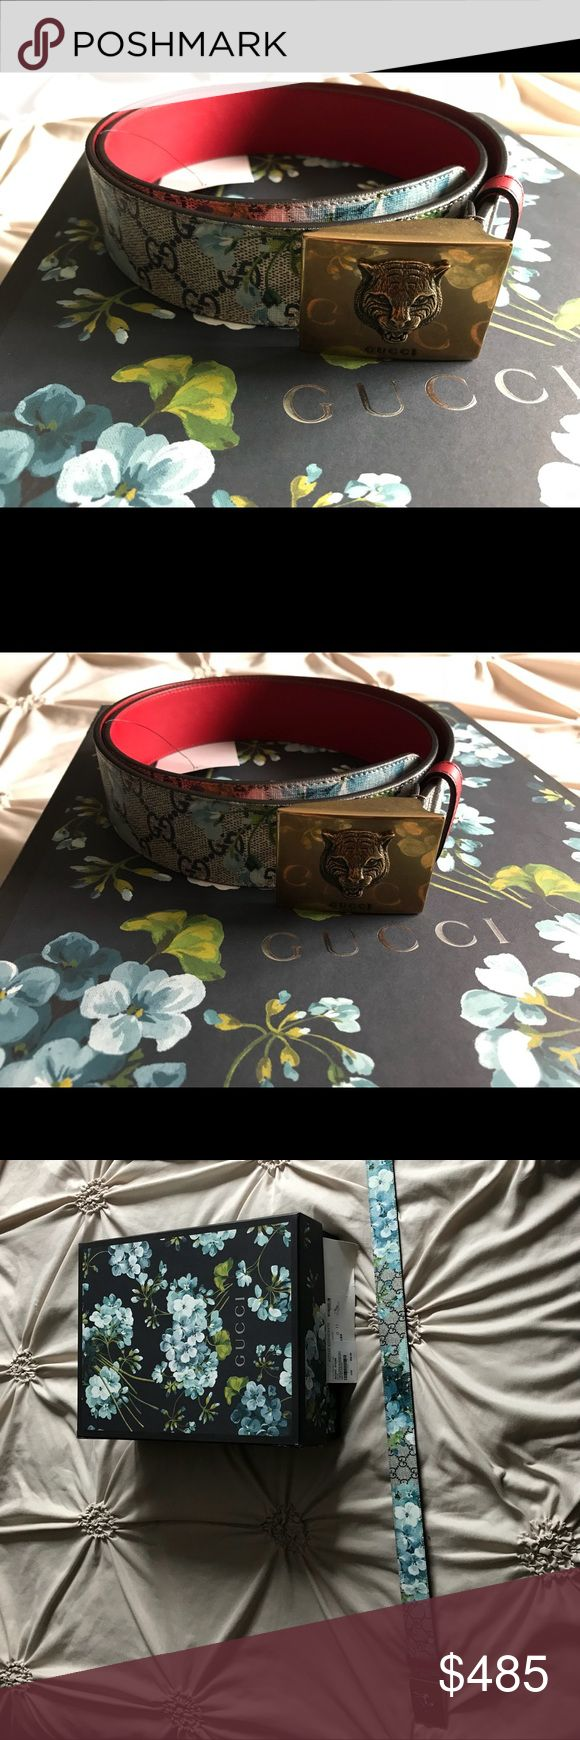 """New Gucci Supreme Feline Blooms Belt 100 CM THIS IS AN AUTHENTIC NEW GUCCI BELT WITH GUCCI x SUPREME CANVAS, NOT LIKE MOST OF THE OTHER """"GUCCI"""" BELTS HERE ON POSHMARK!  MEN'S BELT U.S. SIZE 34 - 40 INCHES.  NEW WITH DUST BAG AND TAGS.  RETAILS FOR $580!  MADE IN ITALY!!! CHECK MY CLOSET FOR THE MATCHING SHOES!!! Gucci Accessories Belts"""